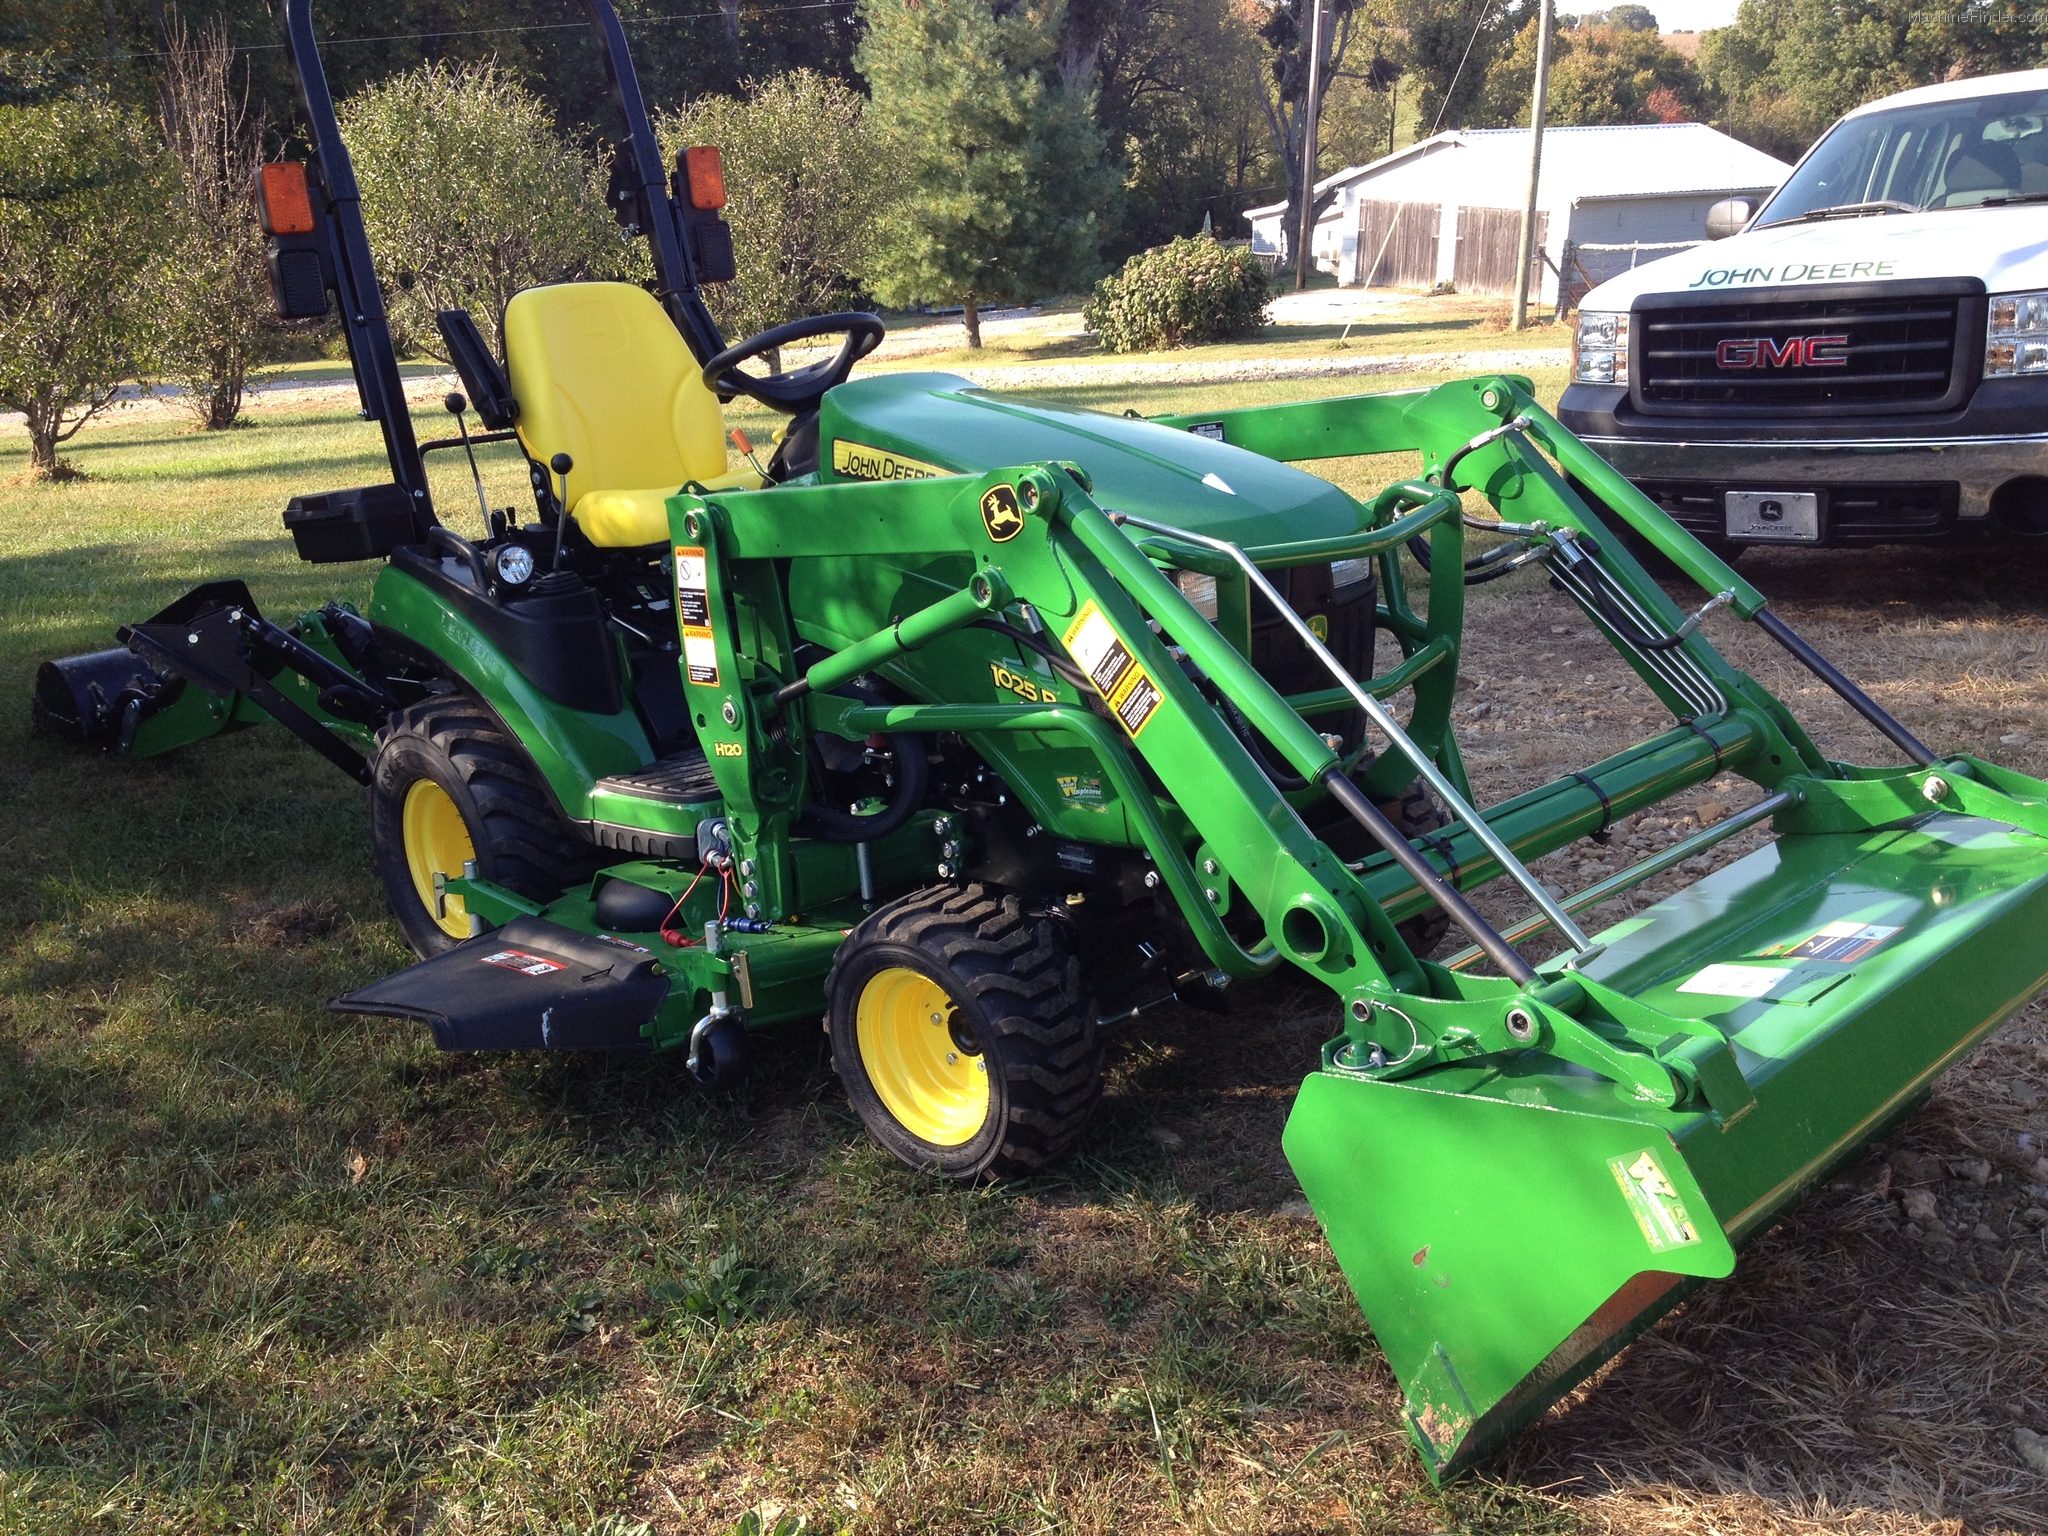 John Deere 1025r Backhoe Attachment Attachments Ignition Switch Wiring Diagram Additionally 110 Tlb Bing Images